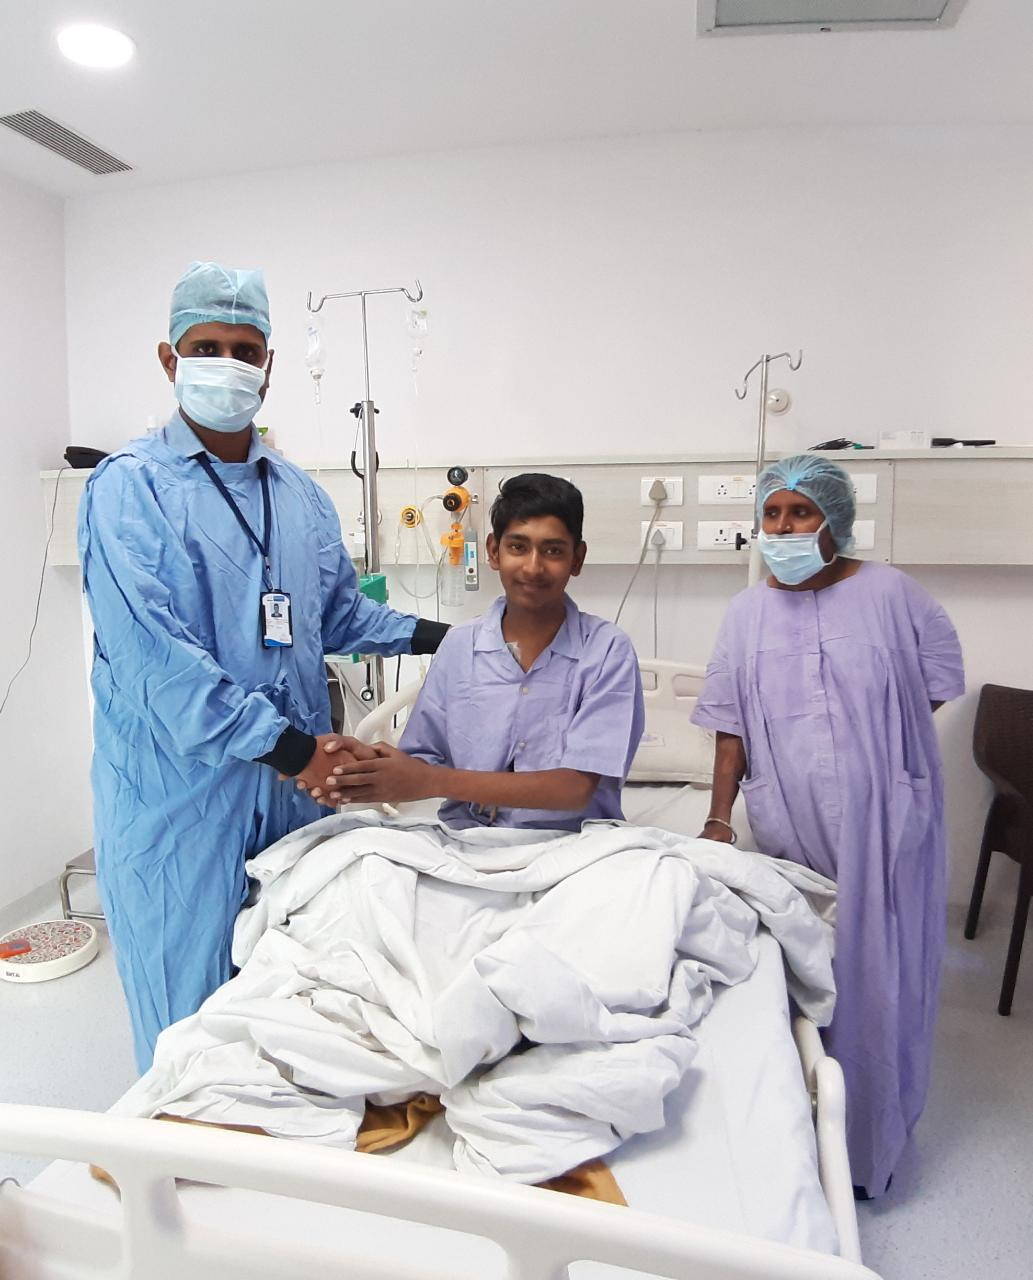 Healthcare NGO - provided financial support for Bone Marrow Transplant